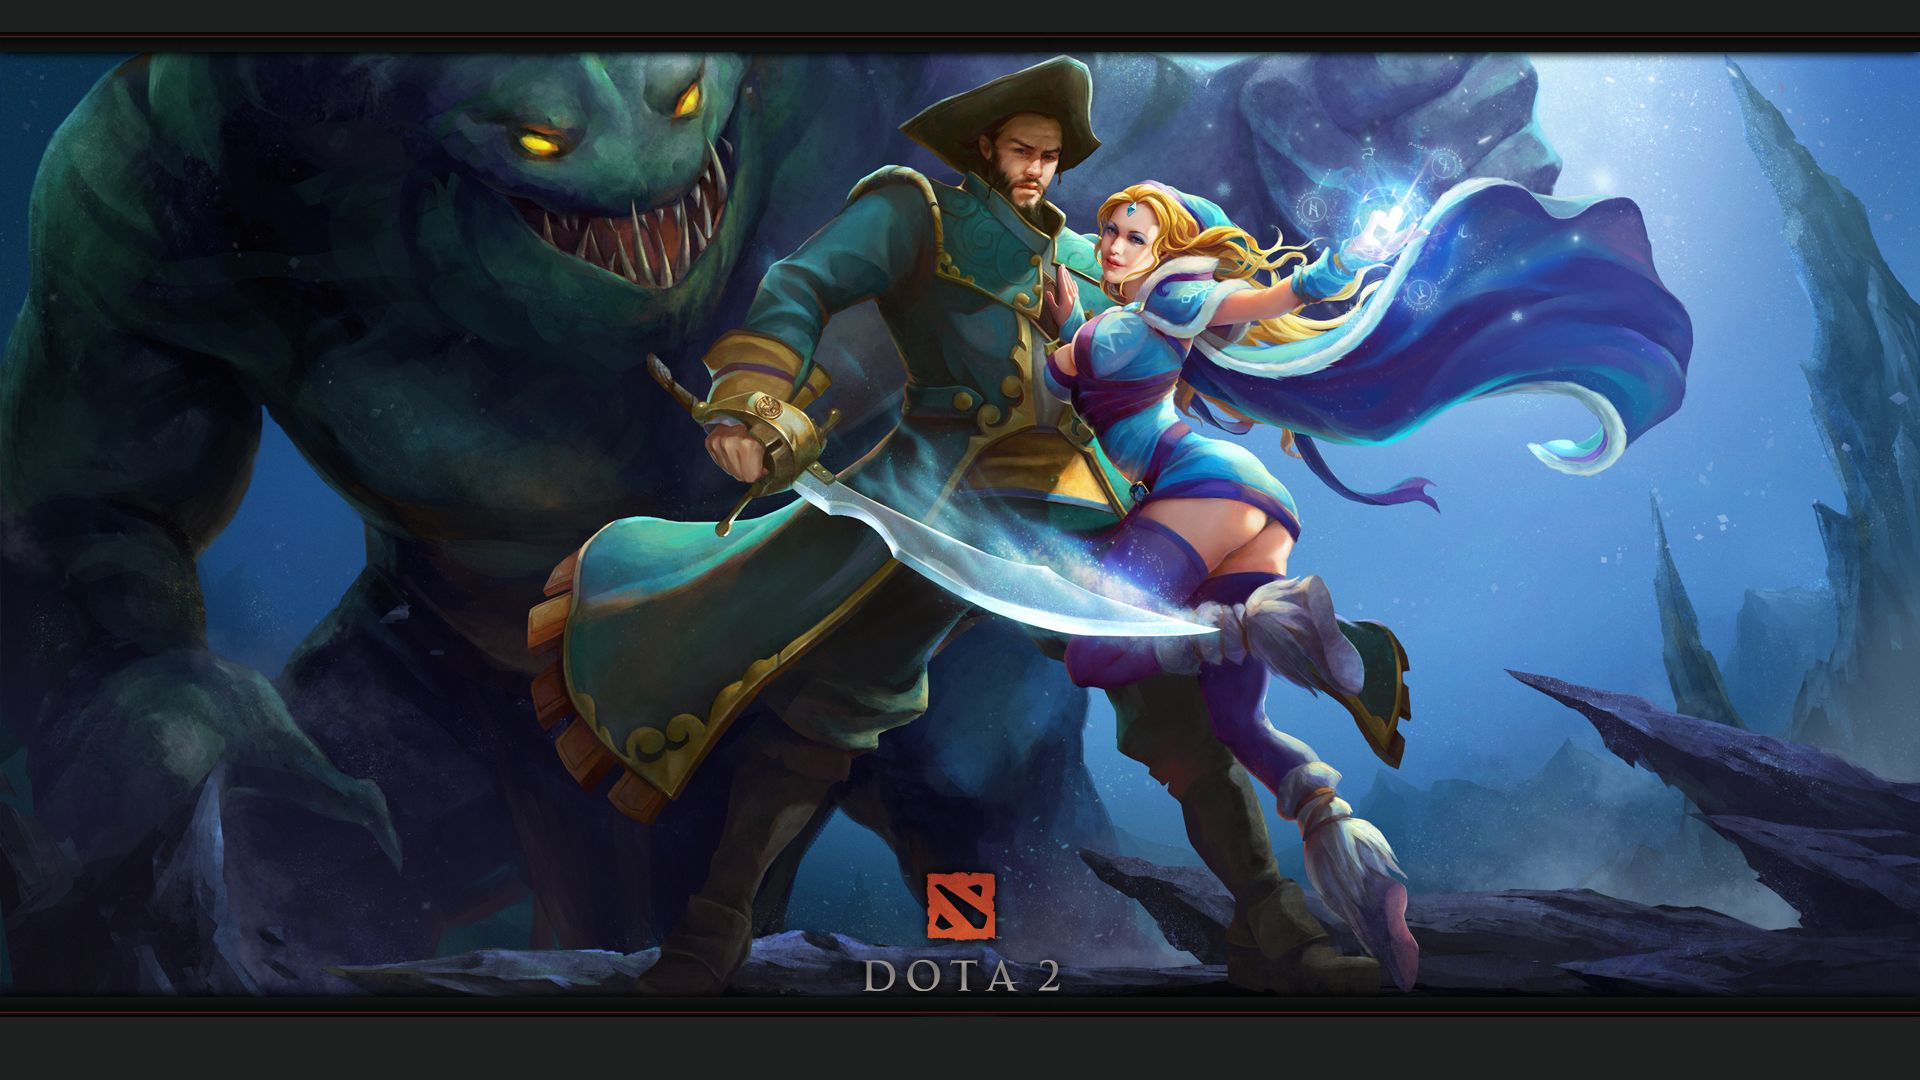 click below link to download dota 2 game click to download